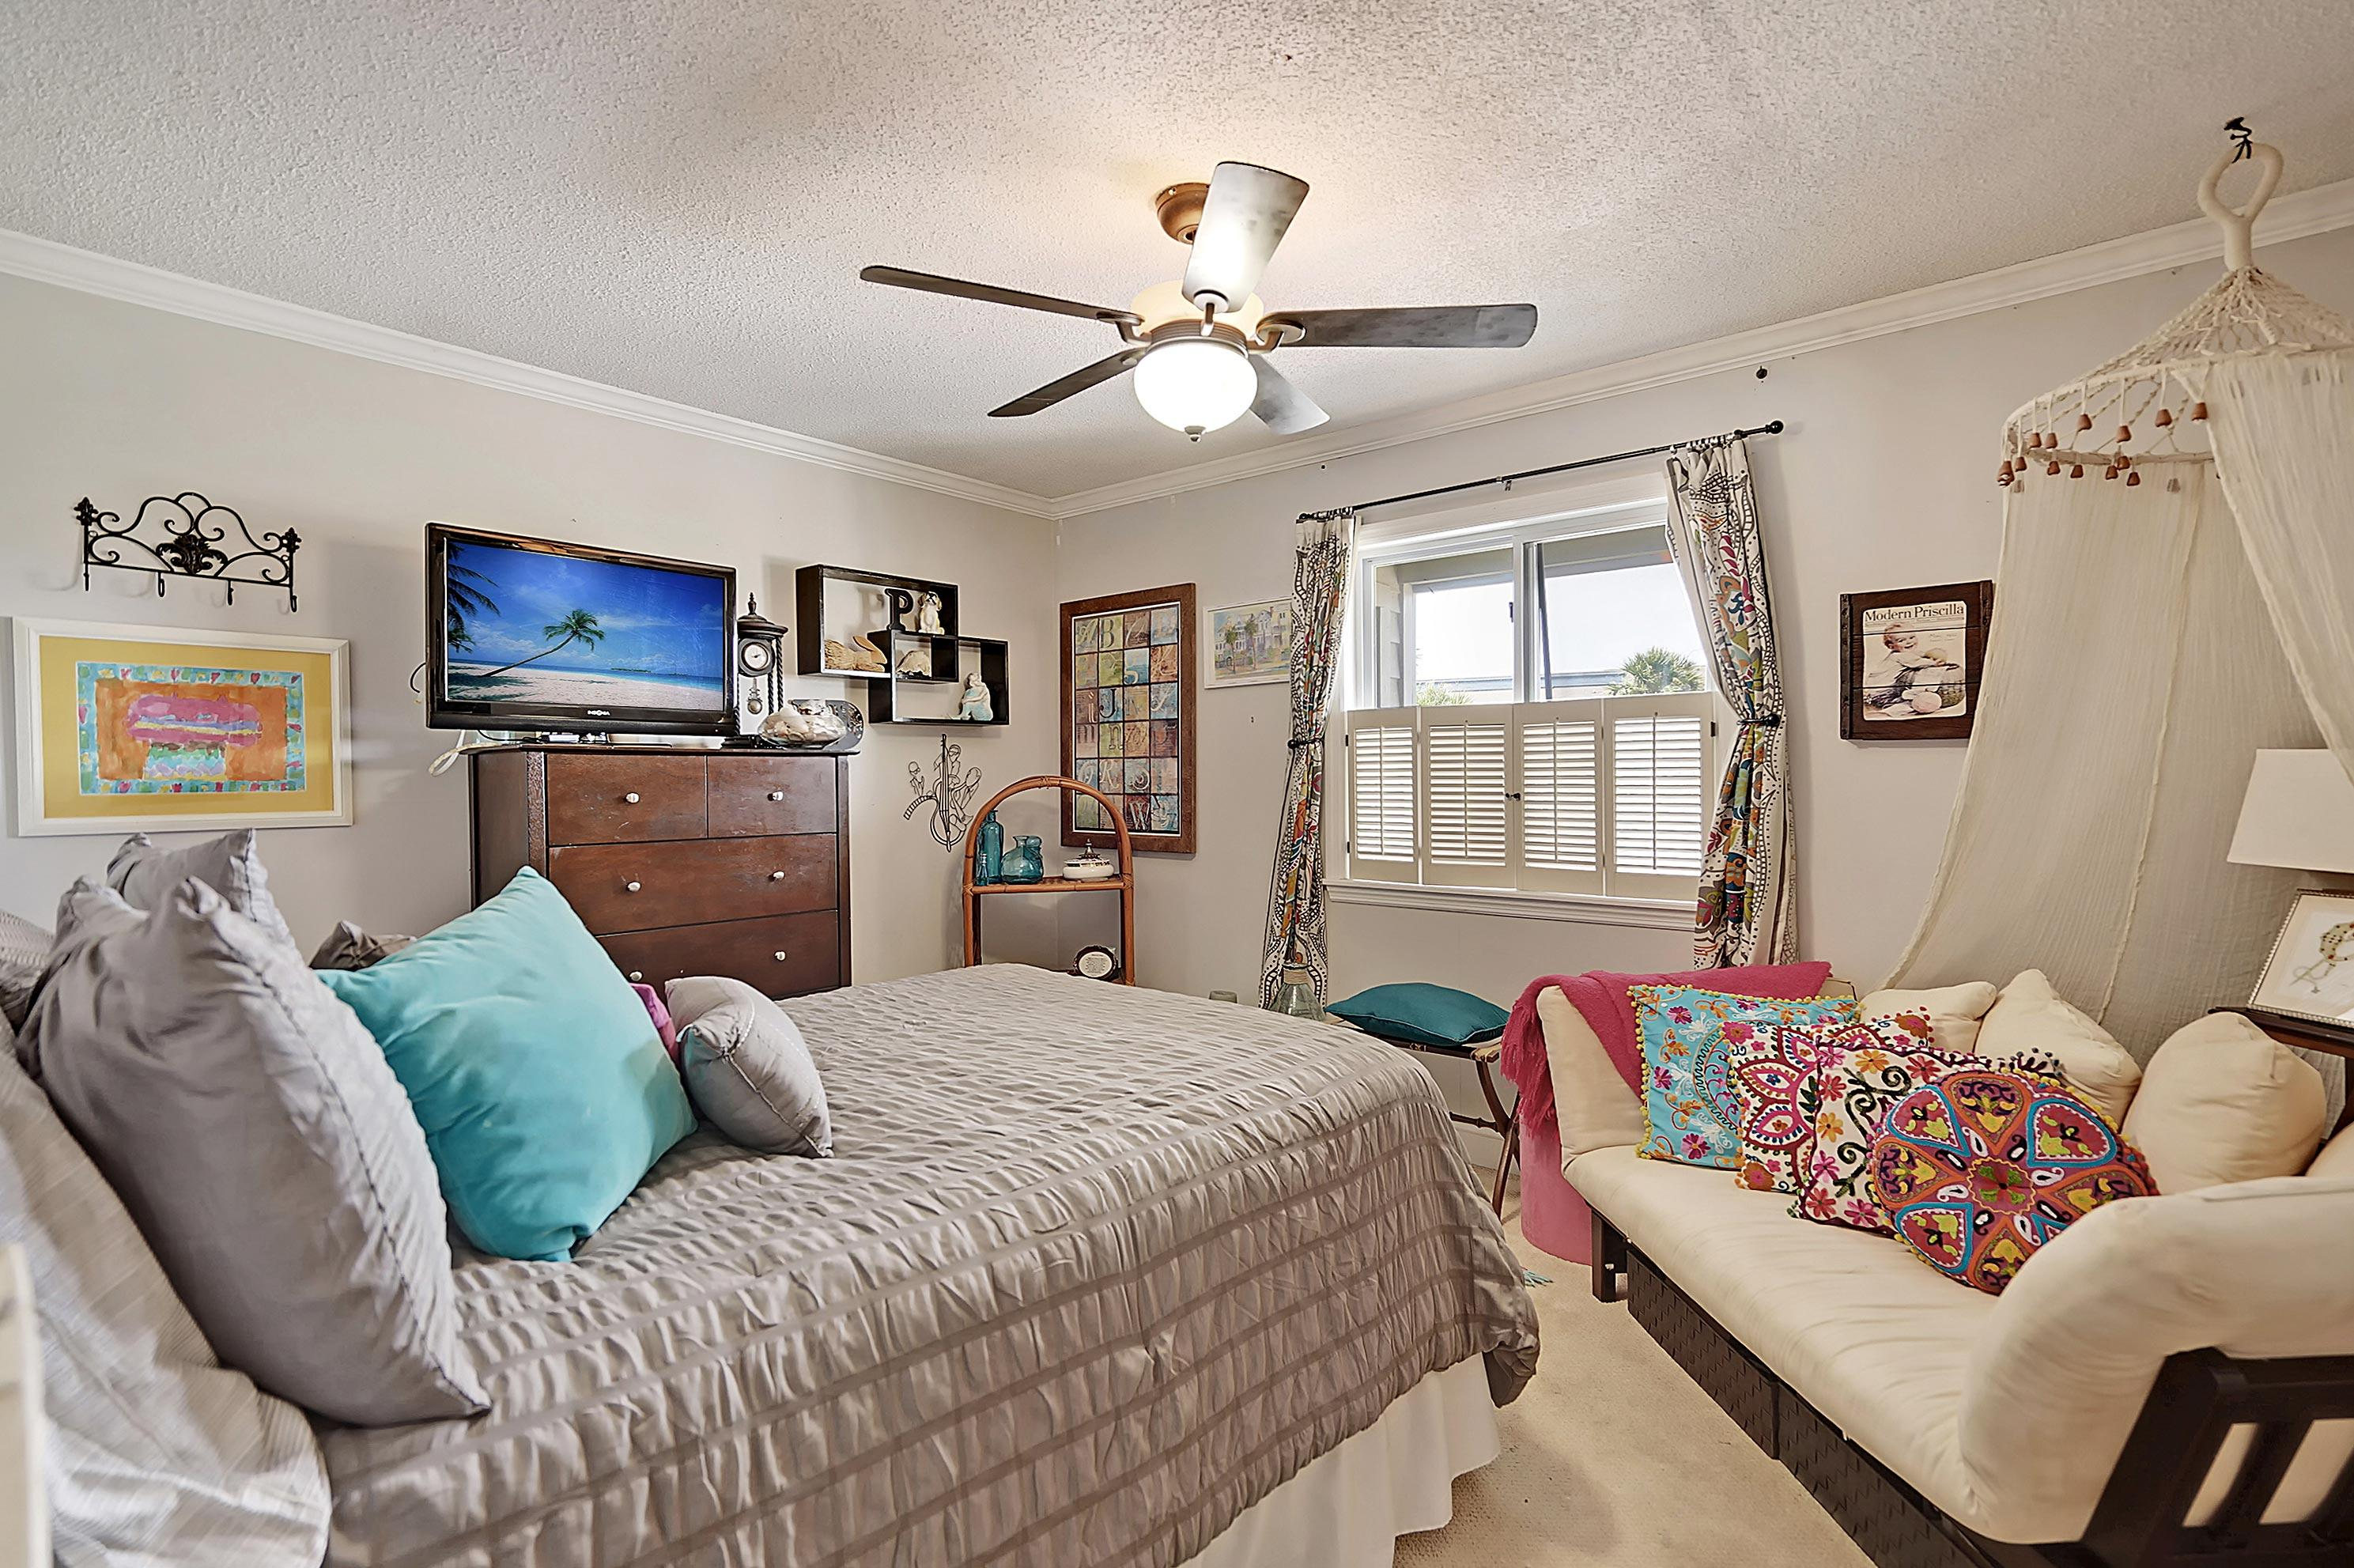 Mariners Cay Homes For Sale - 63 Mariners Cay, Folly Beach, SC - 21